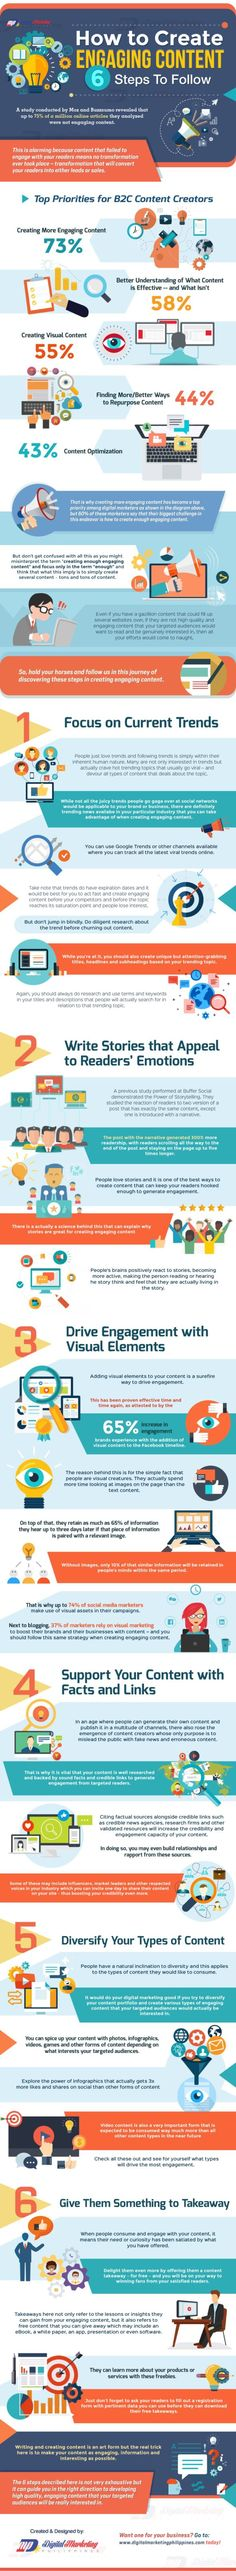 6 Steps Guide To Create Engaging Content #contentmarketing - We all realize that content is key to a successful marketing strategy, but I find myself struggling everyday in producing engaging content that people actually want to read.